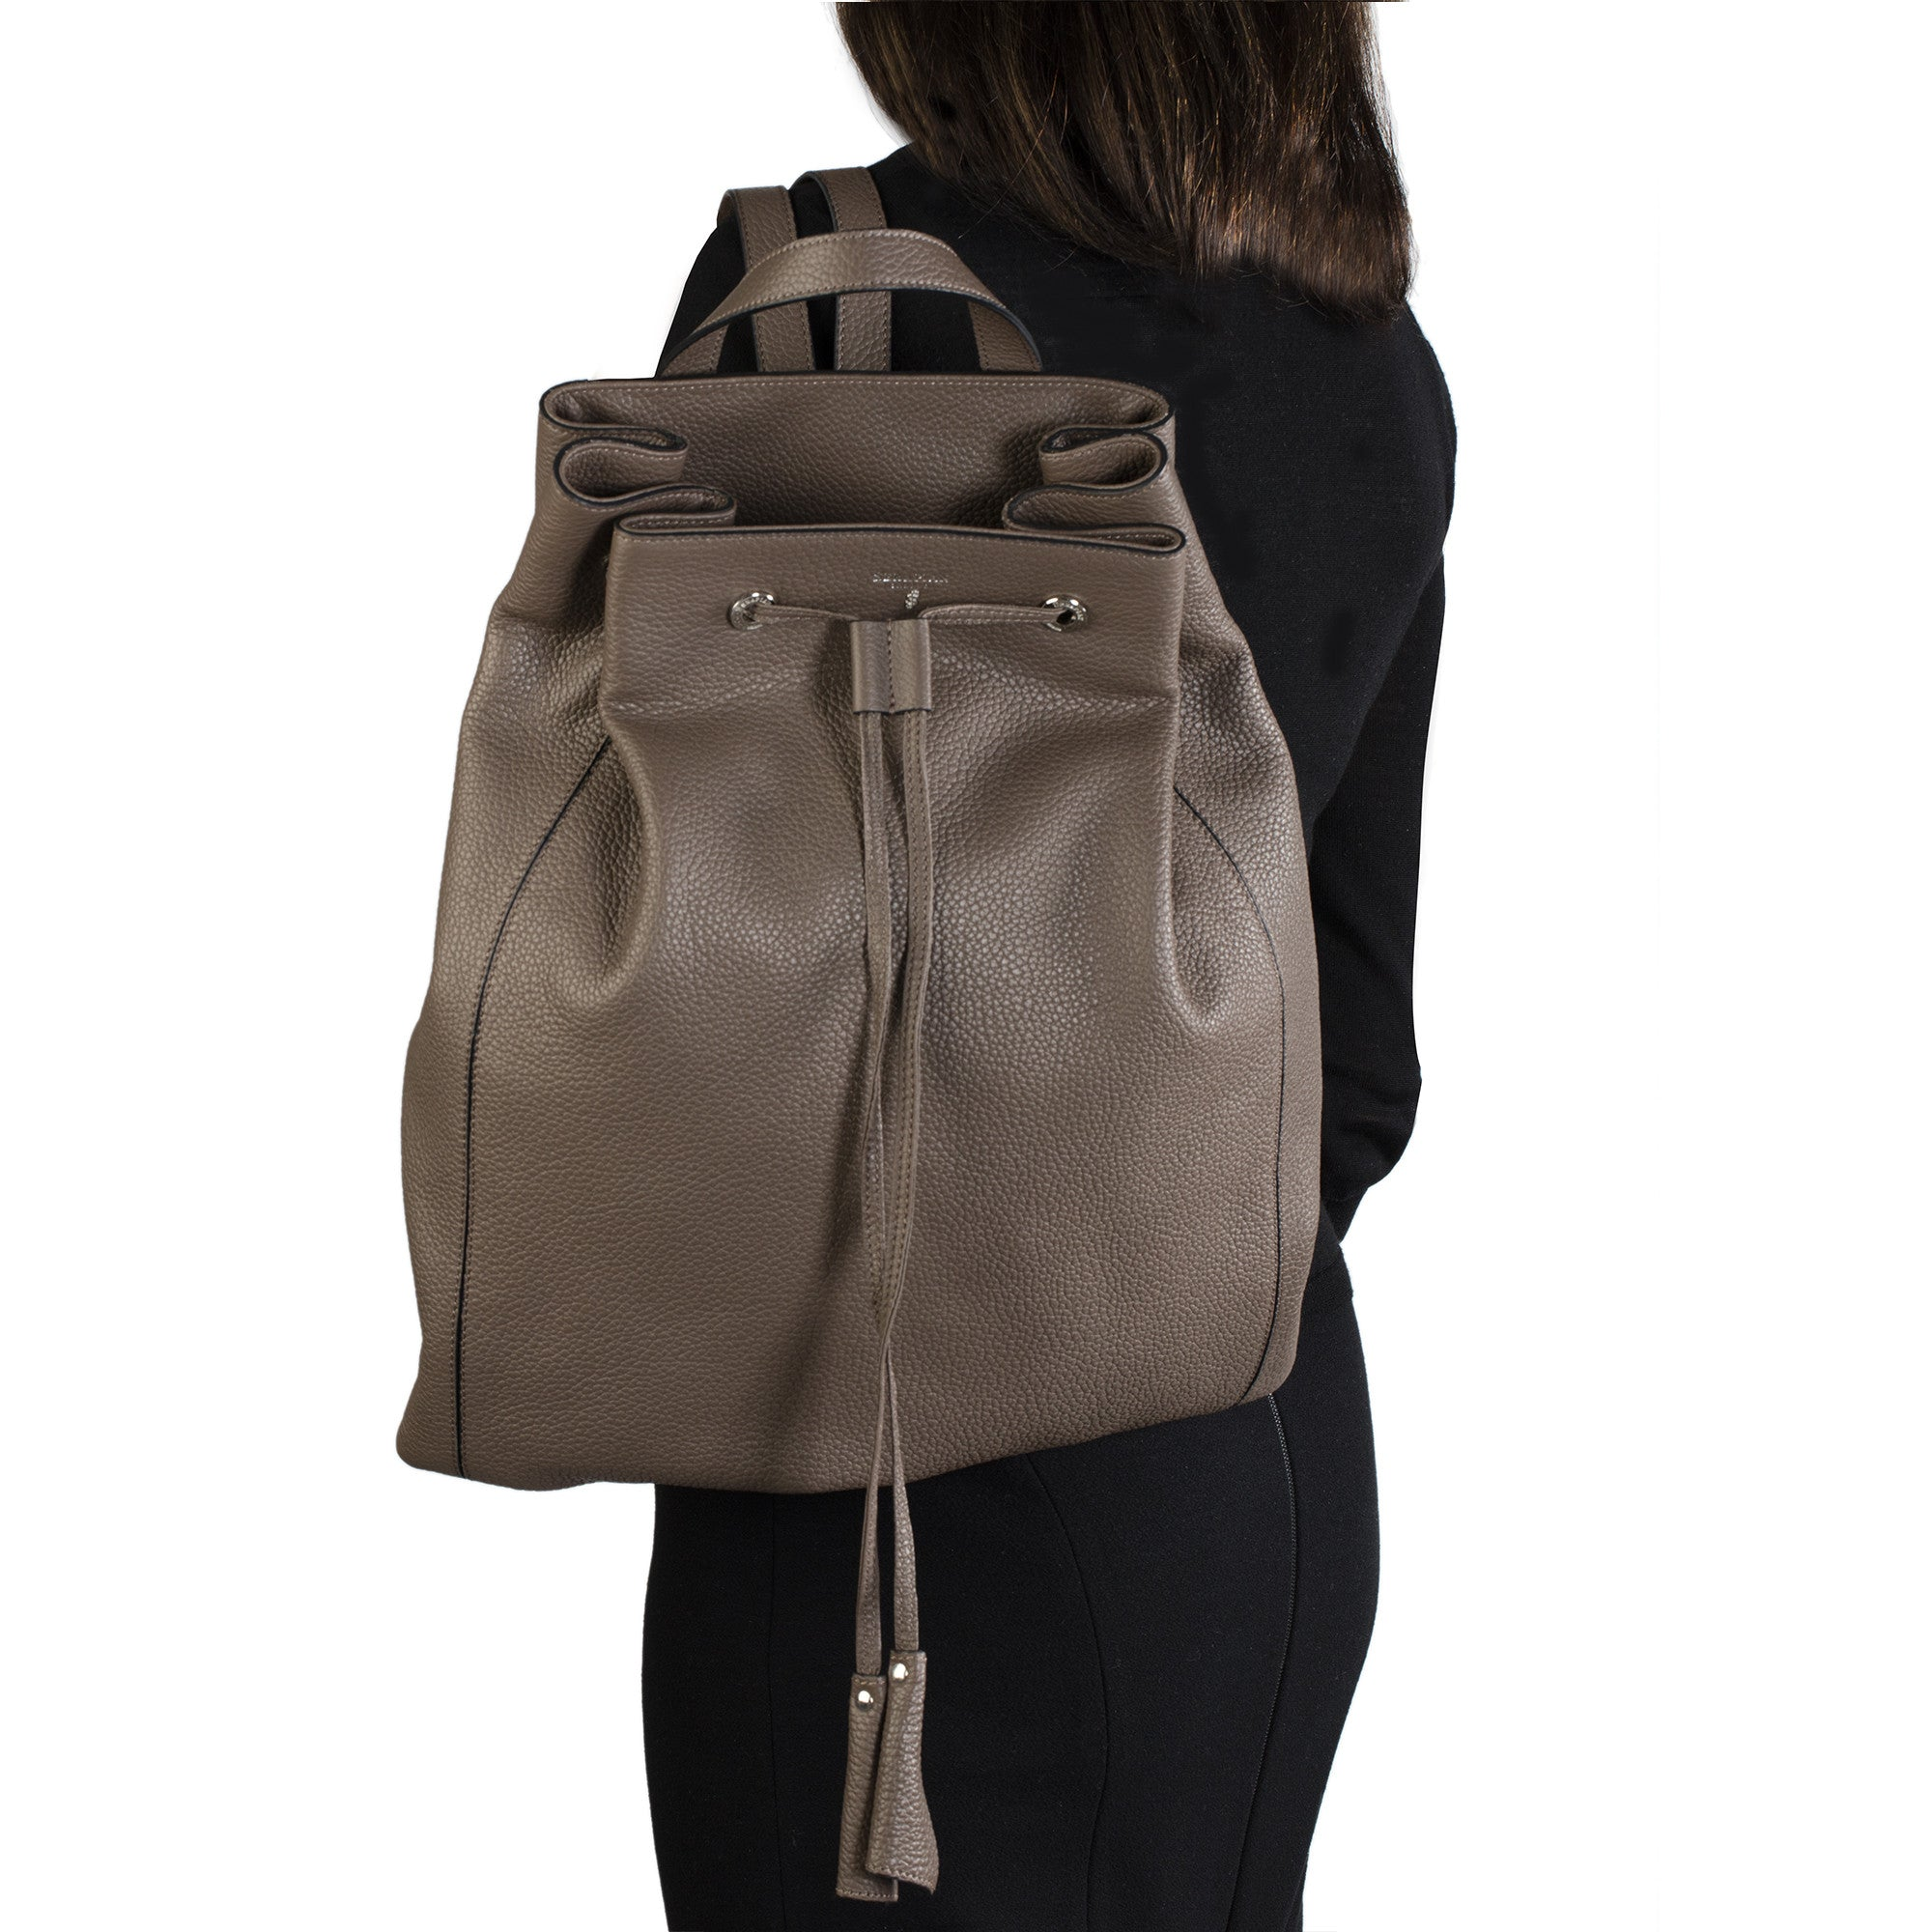 Leila Backpack Cachemire - Taupe